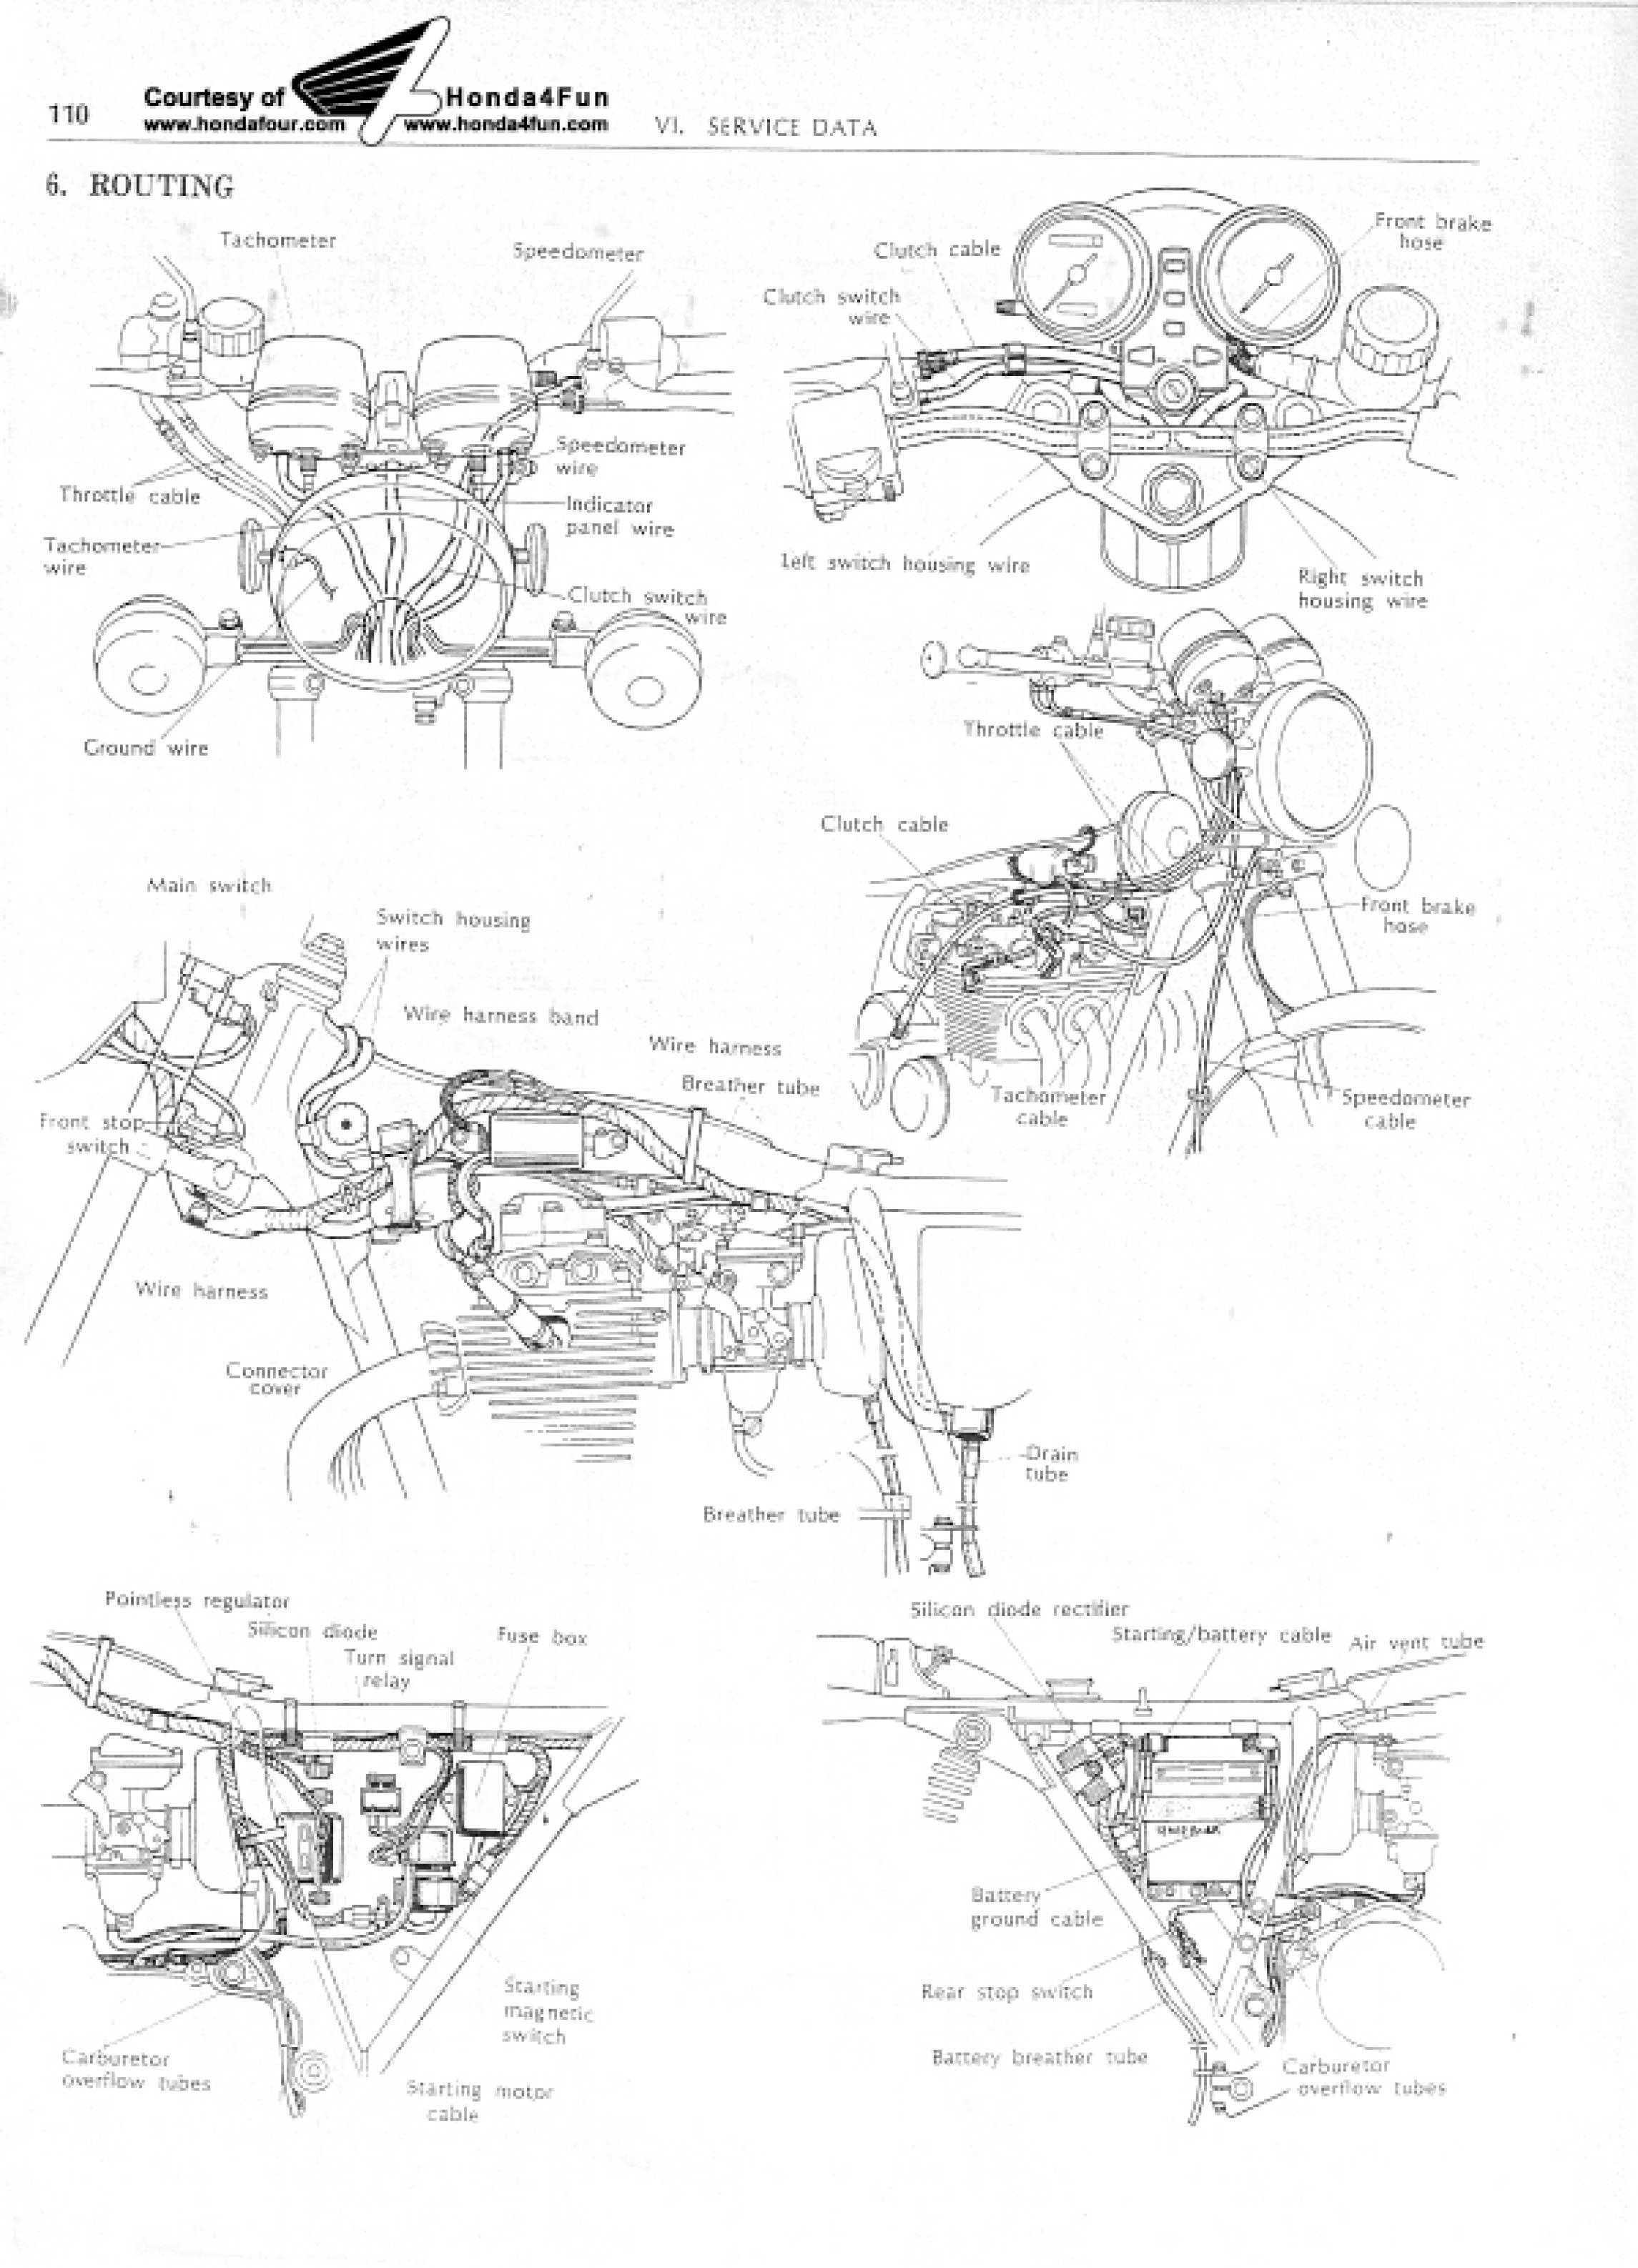 1973 Cb750 Chopper Wiring Diagram Search For Diagrams Honda Cb350 Four 31 Images Bobber